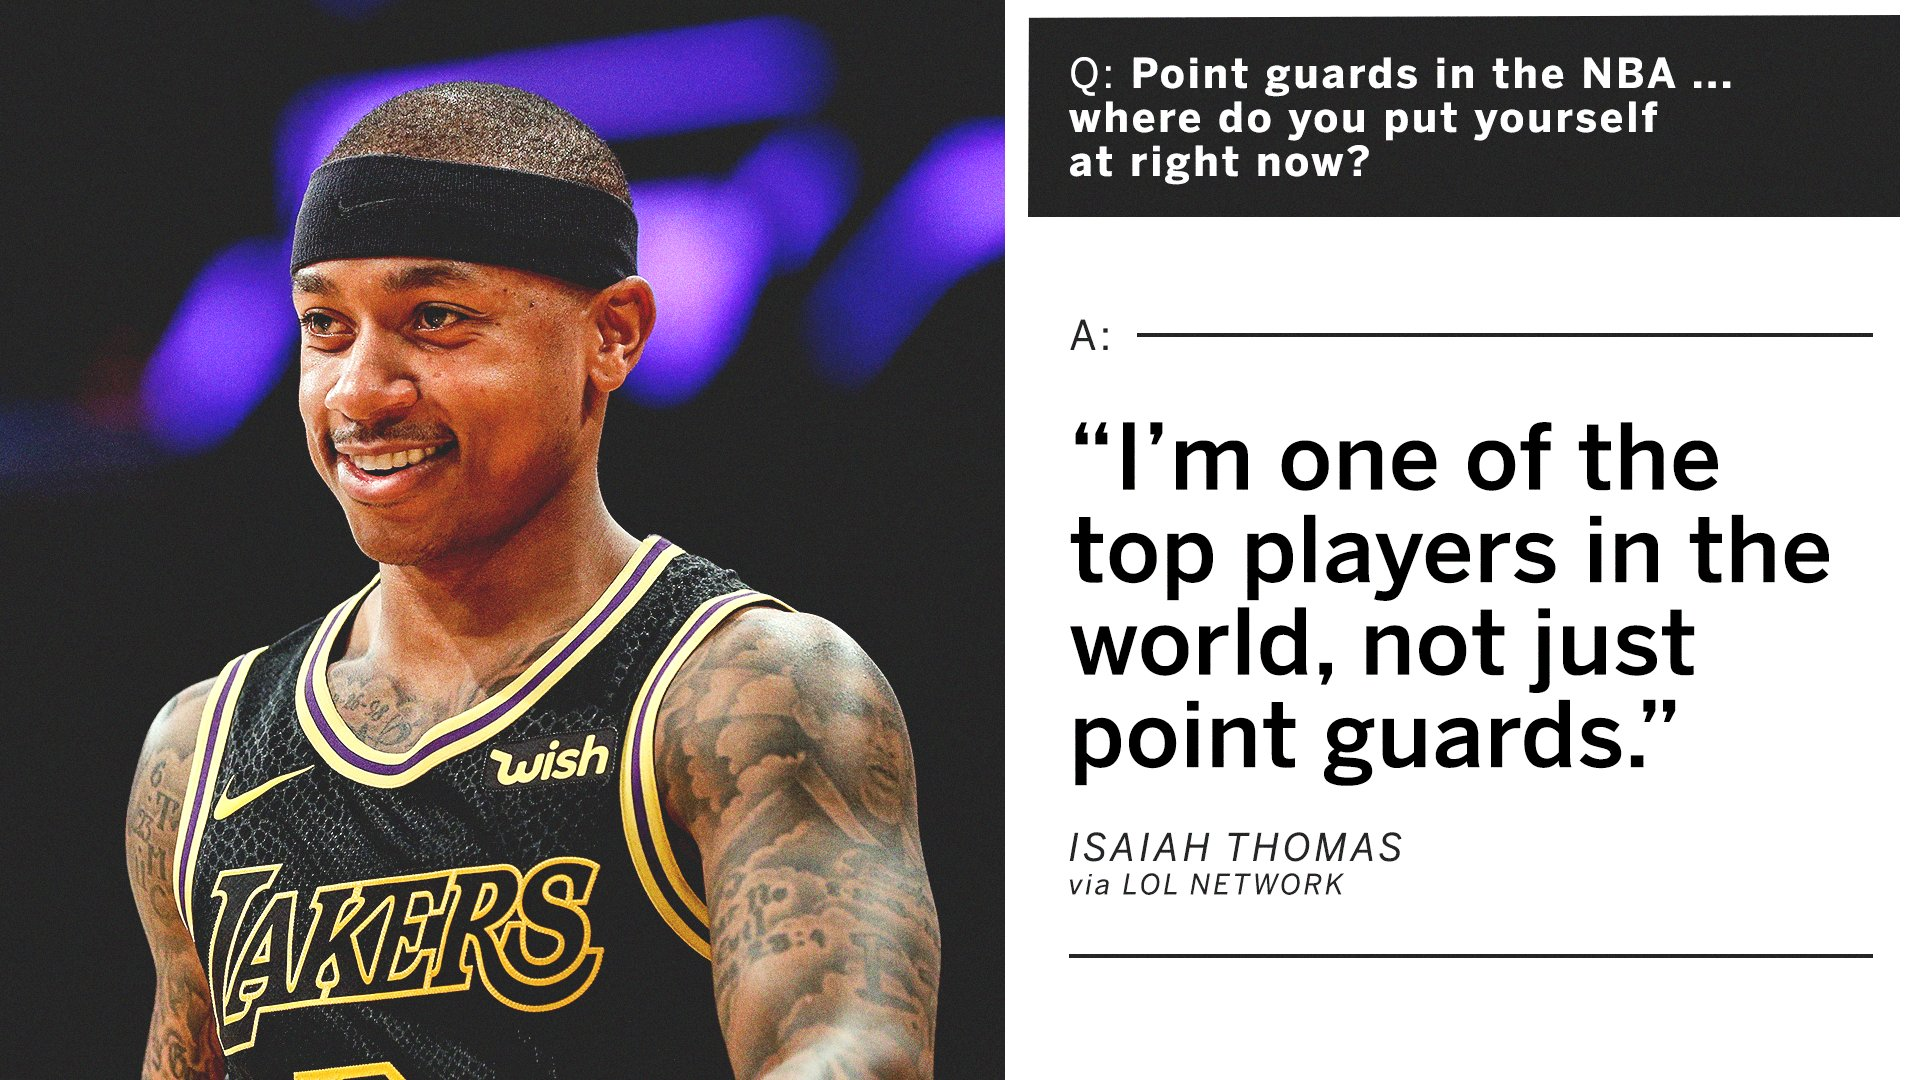 Isaiah Thomas doesn't lack self-confidence ��‍♂️ https://t.co/CojzP8VB5h